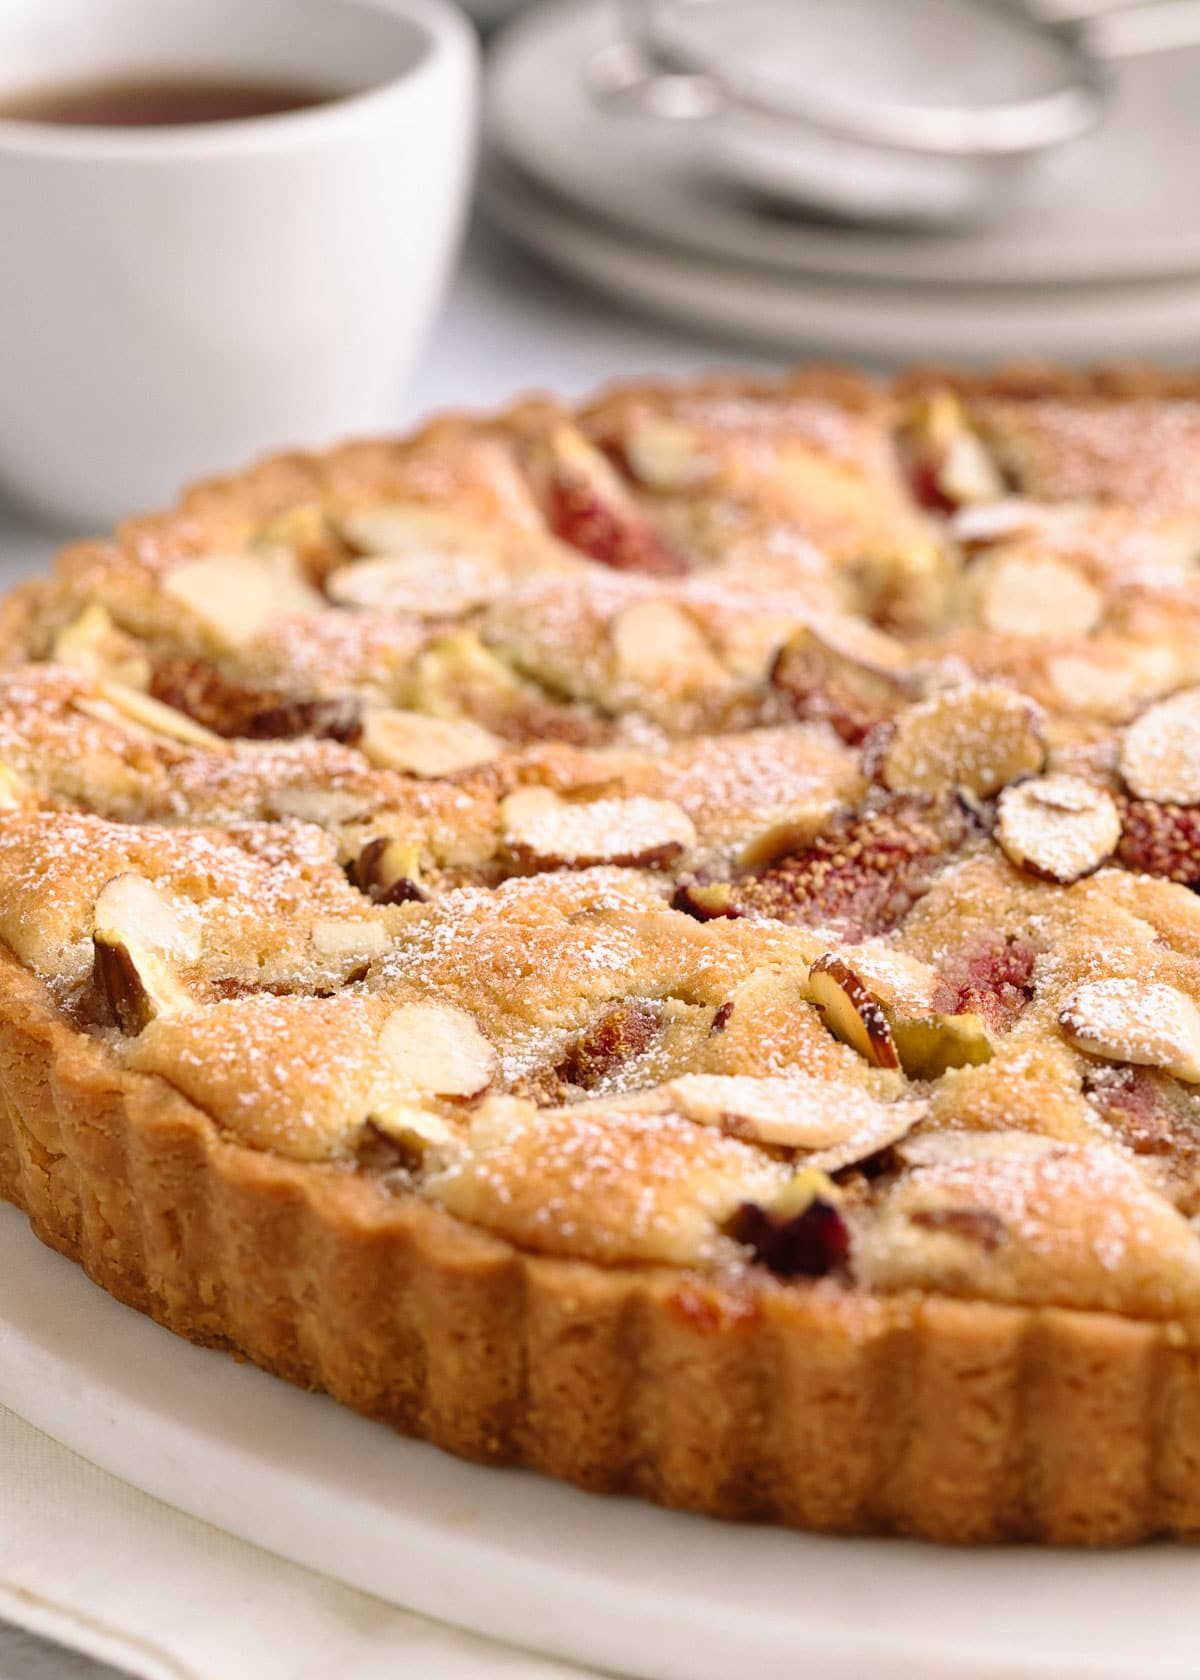 side view of a baked fig and almond cream tart on a white marble board